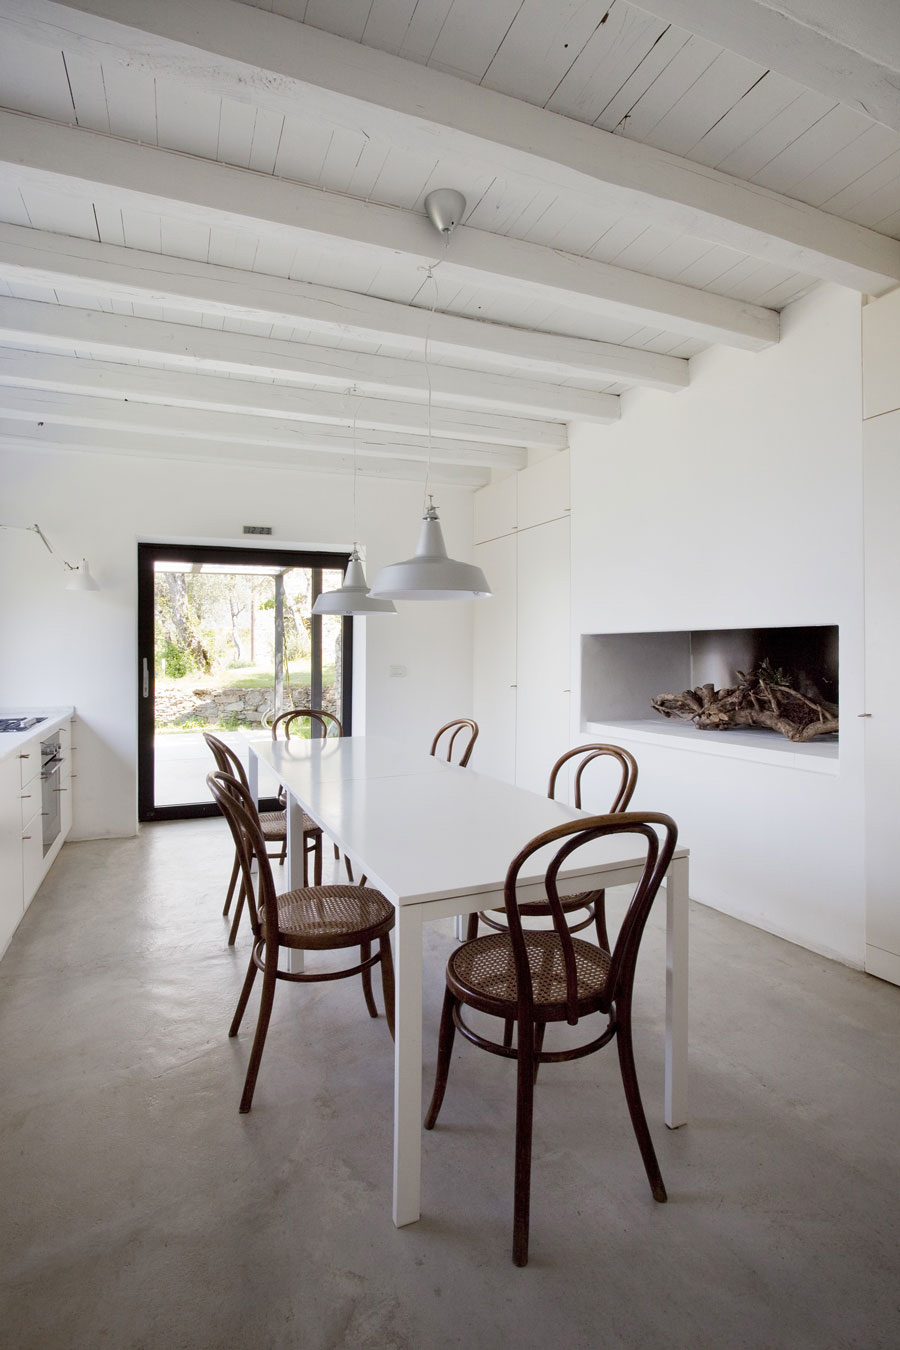 White Dining Table, Farmhouse in Riomaggiore, Italy by A2BC Architects and SibillAssociati